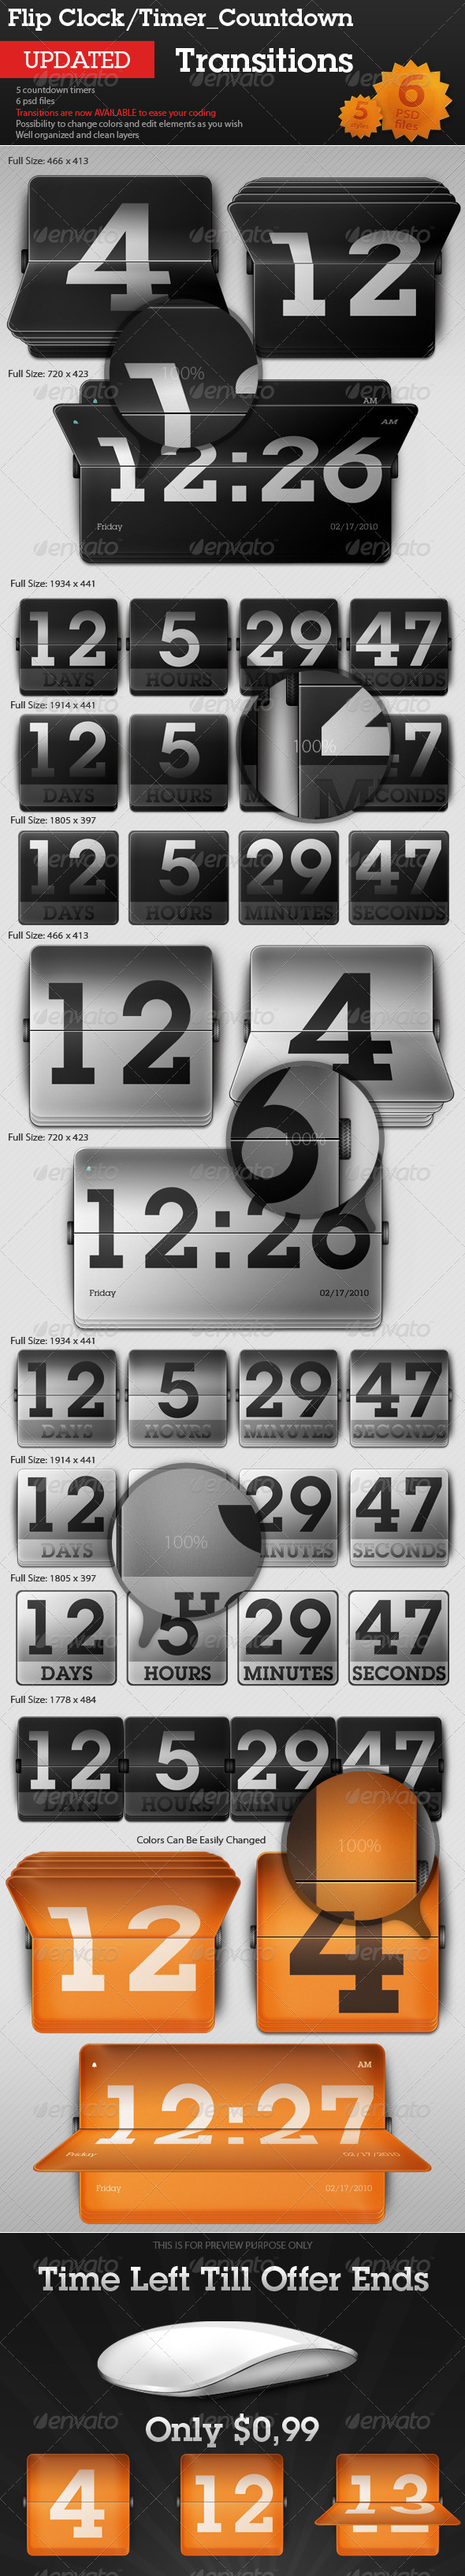 Flip Clock / Countdown Timer - Transitions - Miscellaneous Web Elements